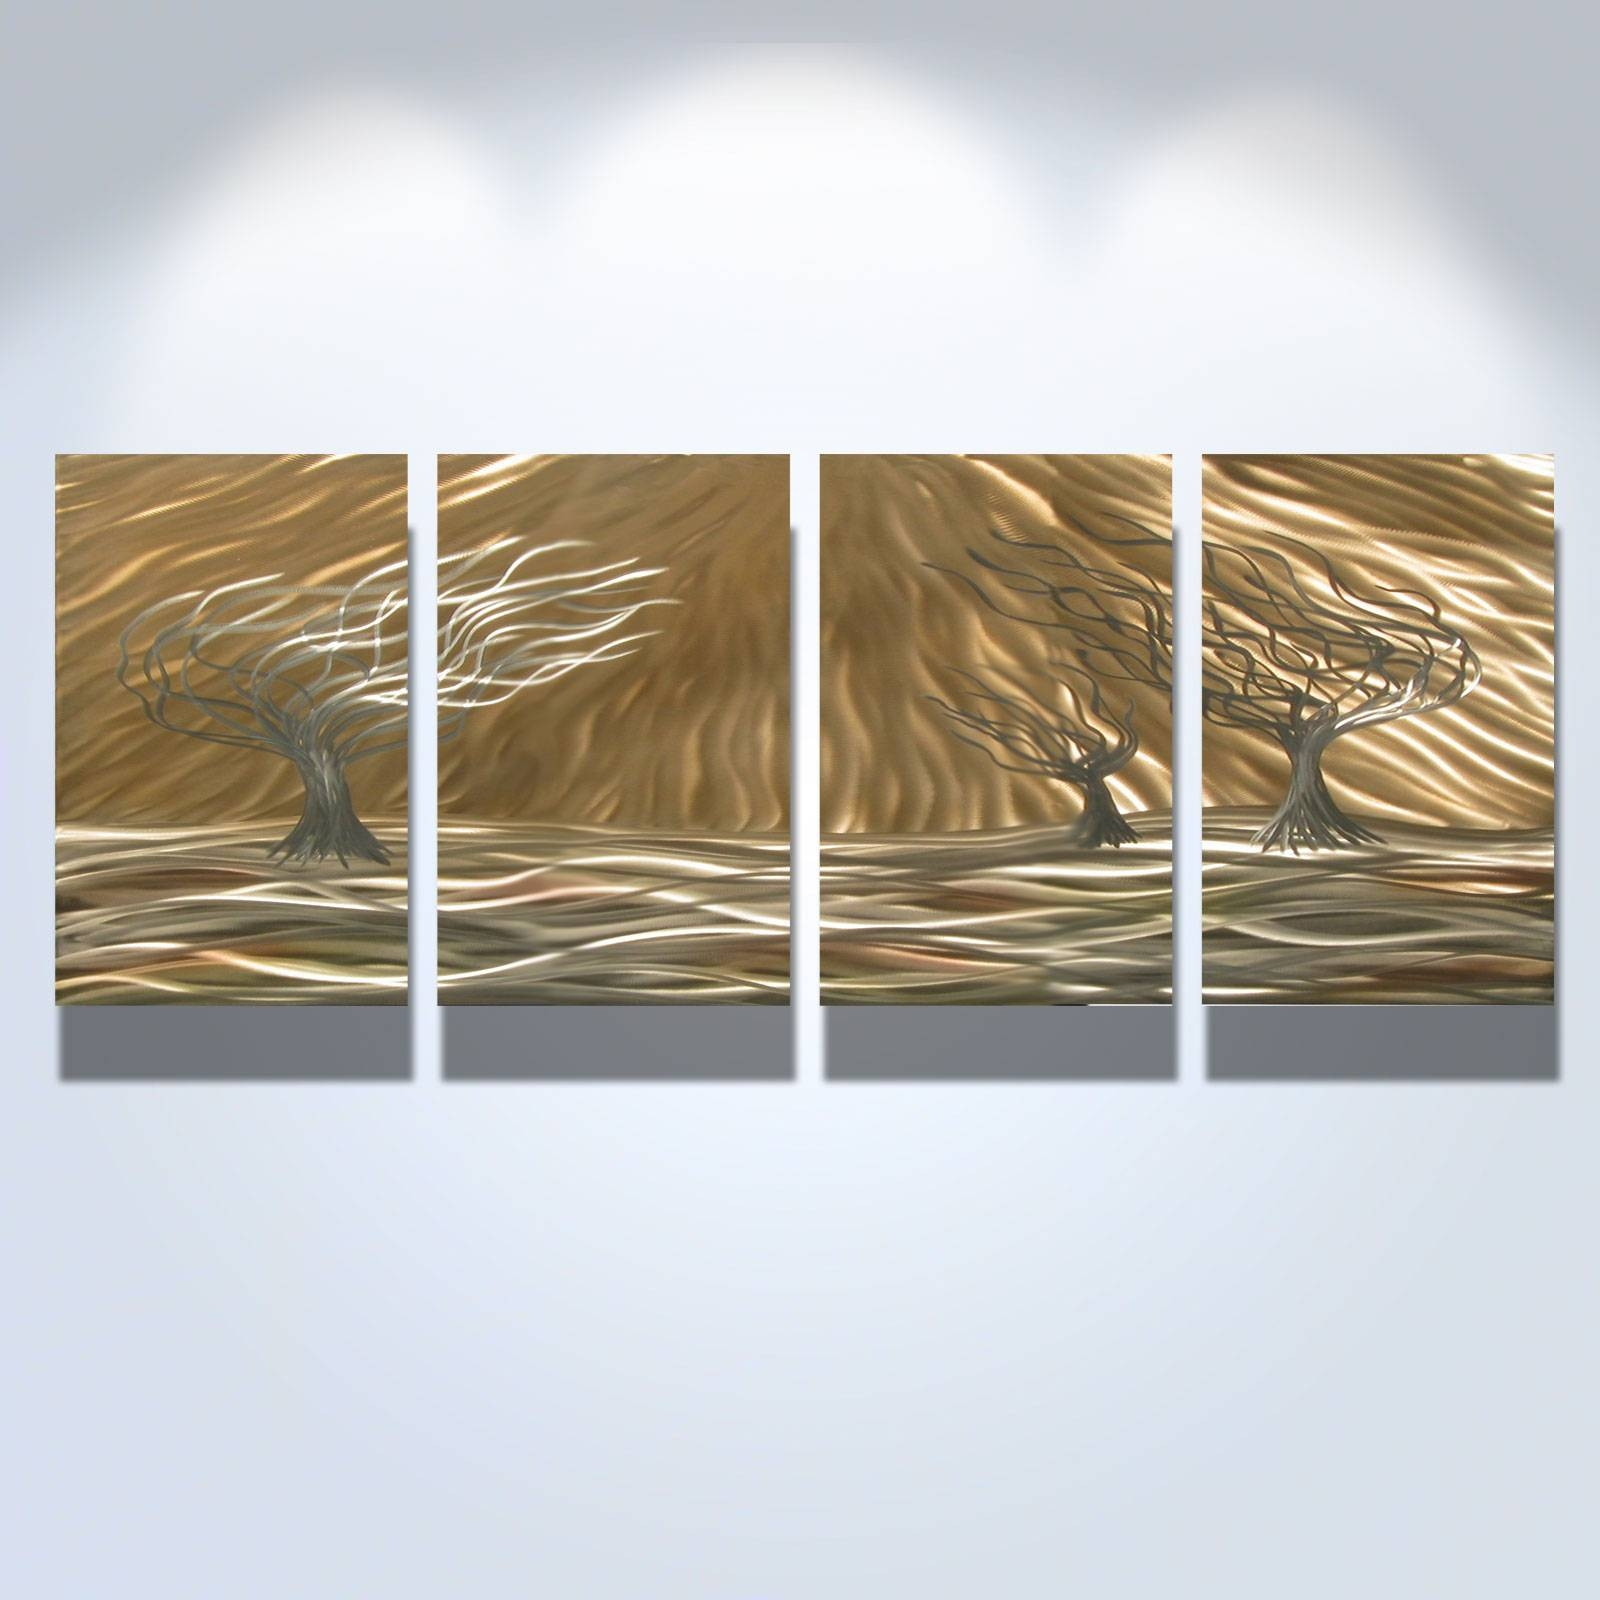 3 Trees 4 Panel - Abstract Metal Wall Art Contemporary Modern within Newest Metal Wall Art Panels